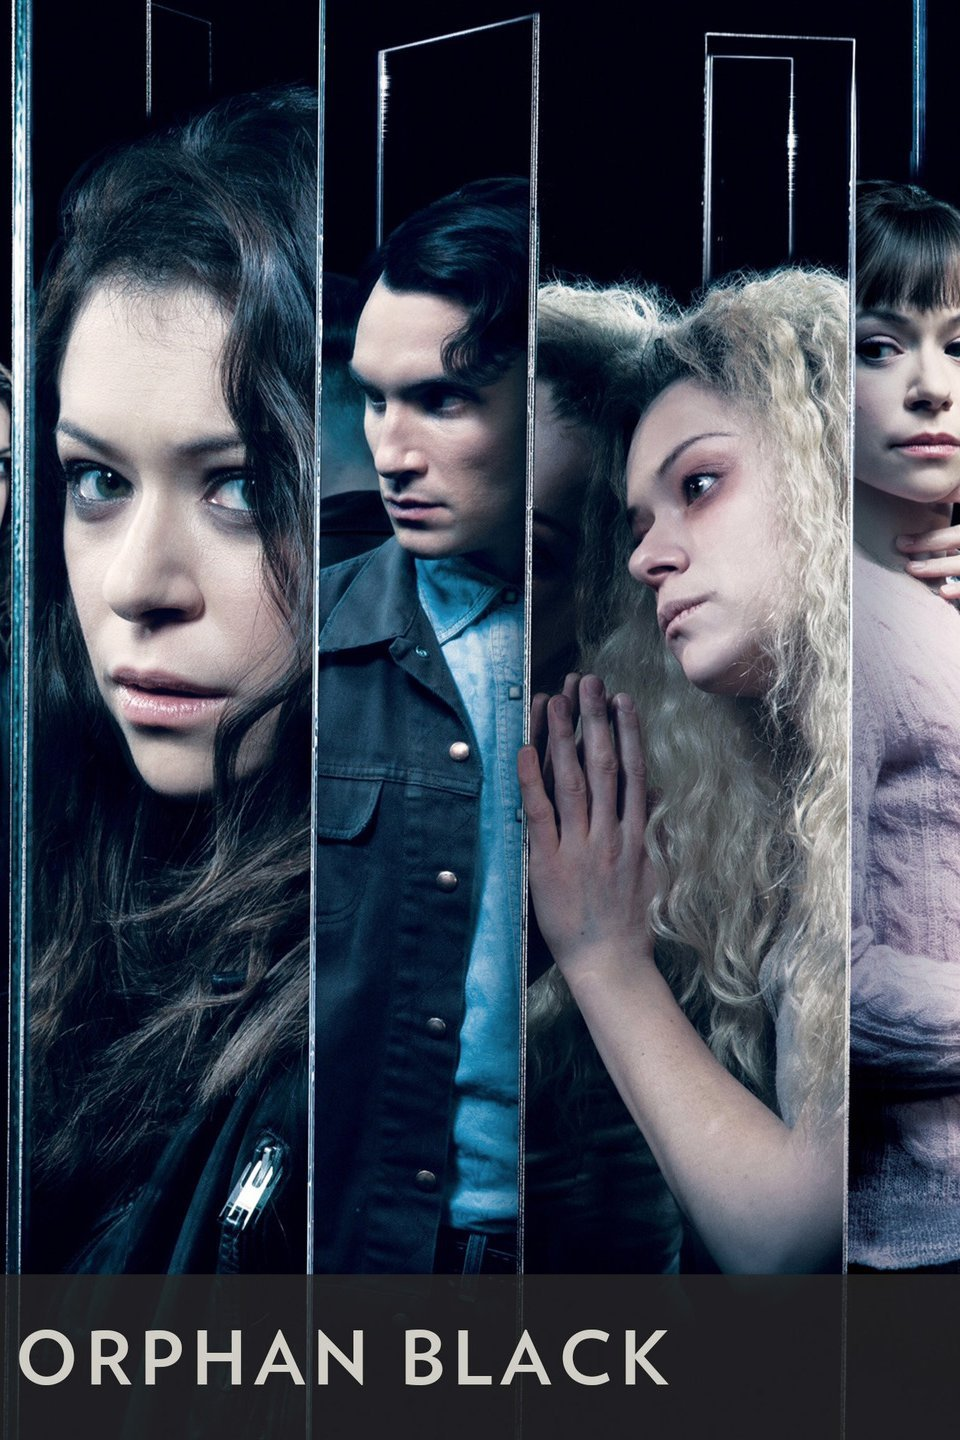 Orphan Black Season 5 Episode 1 Download HDTV 480p & 720p